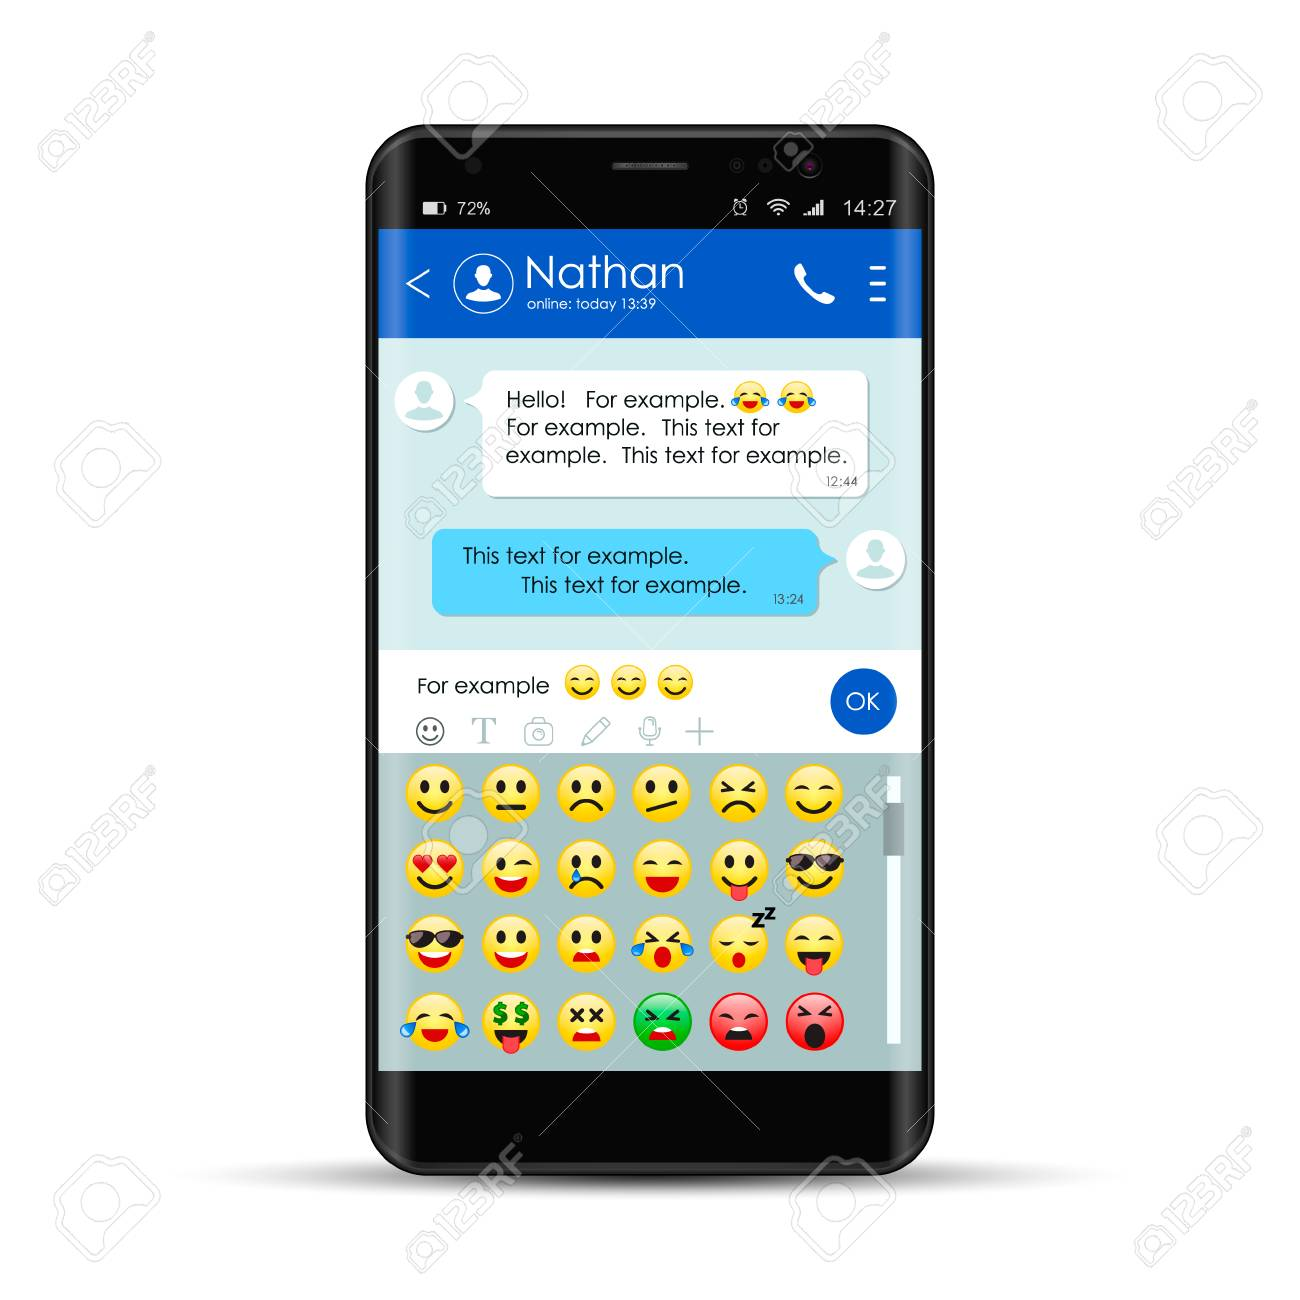 Realistic smartphone With messenger chat app template with mobile